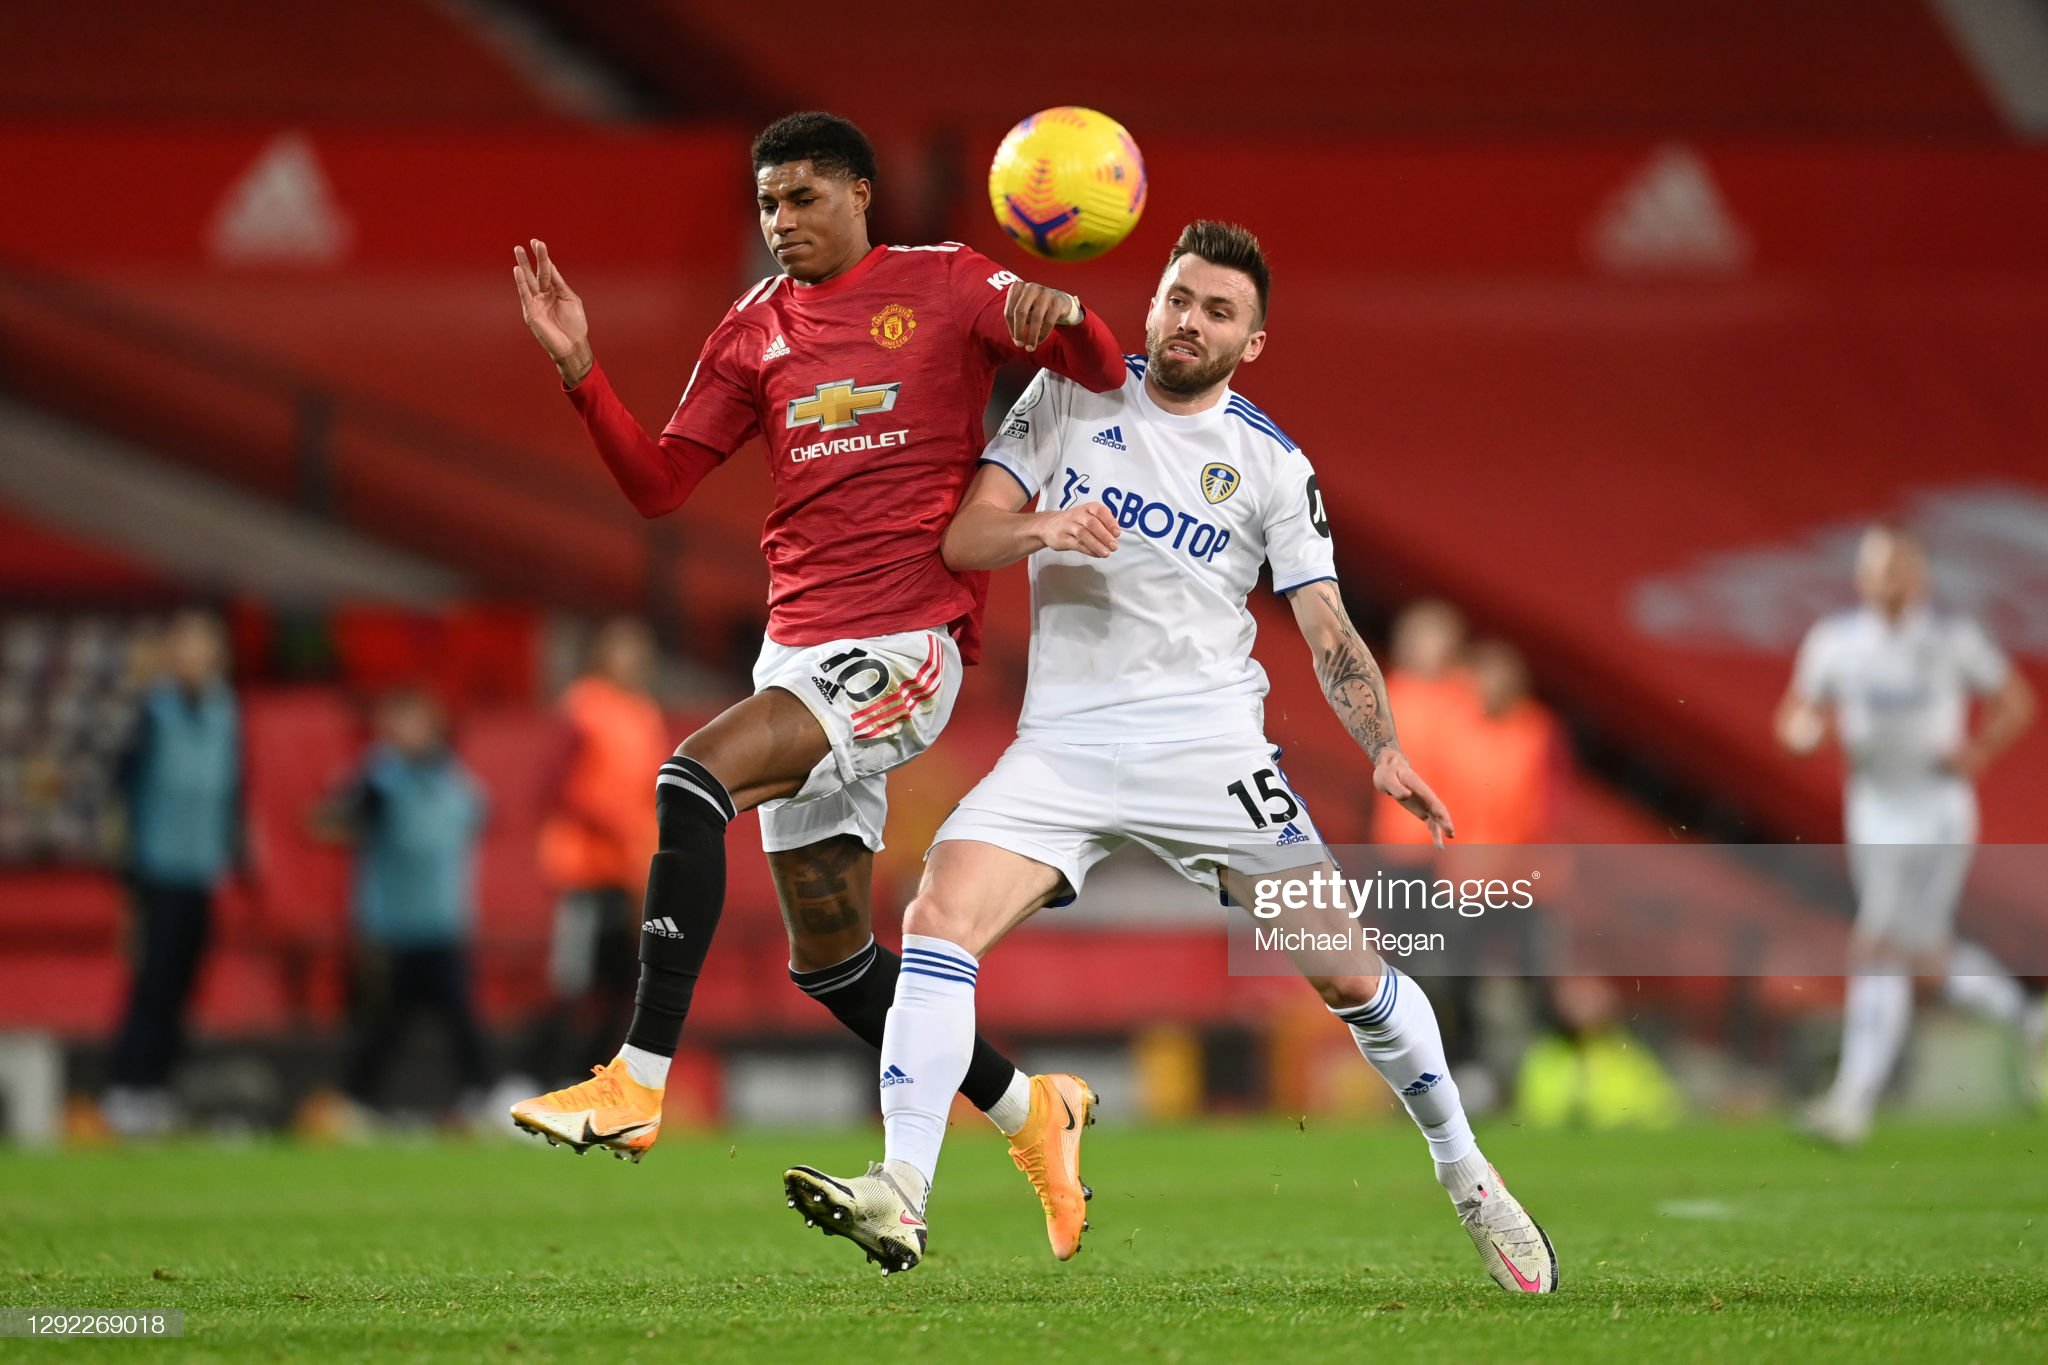 Leeds United vs Manchester United preview, prediction and odds